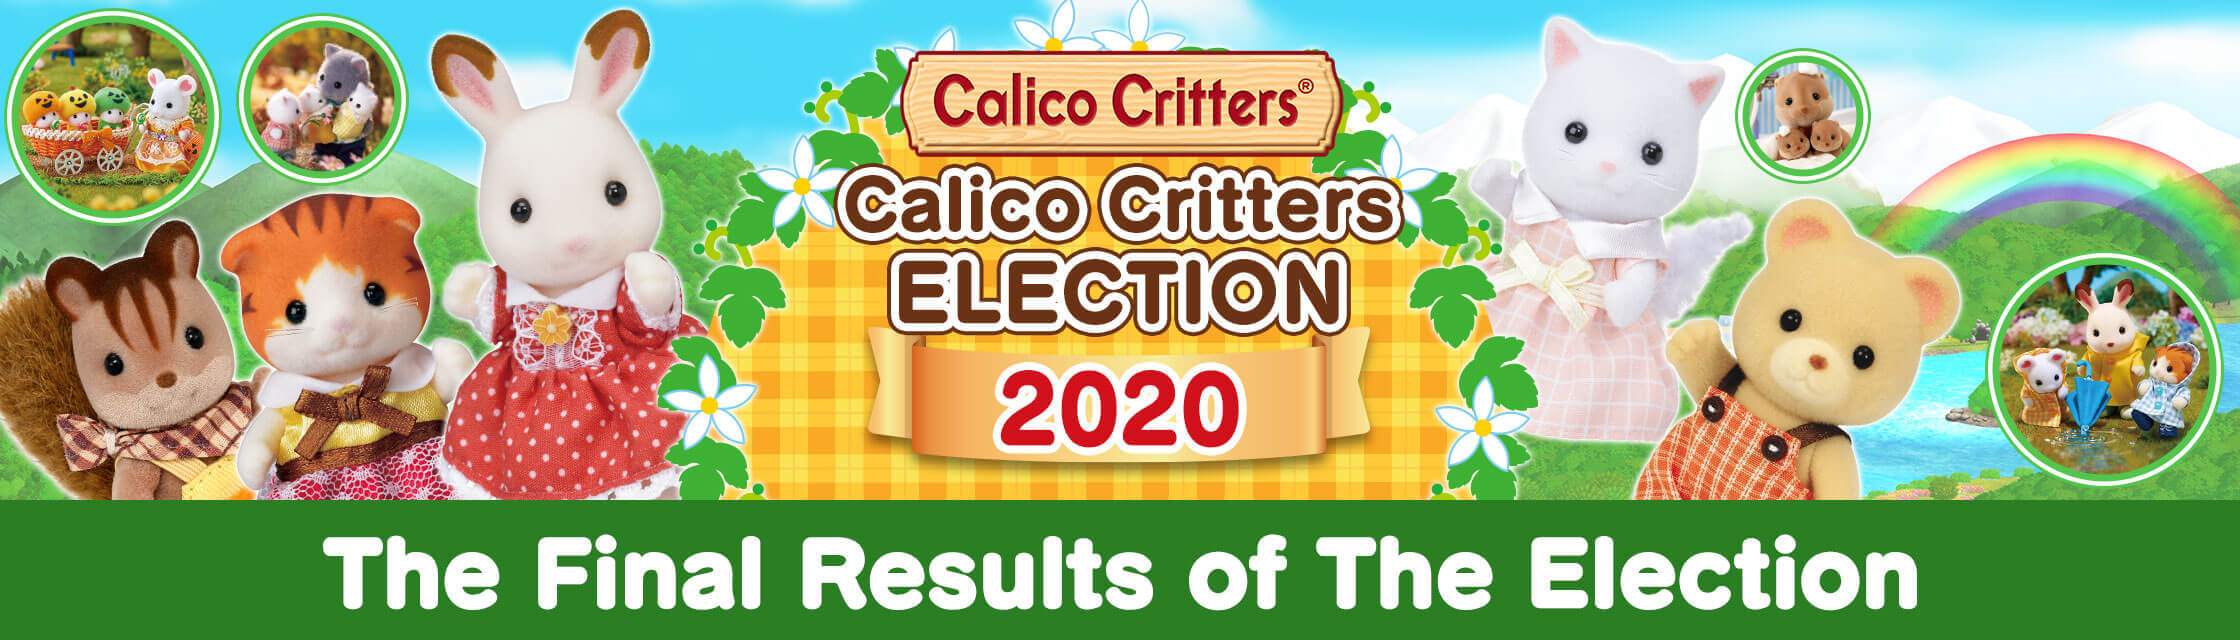 Calico Critters 2020 Election!